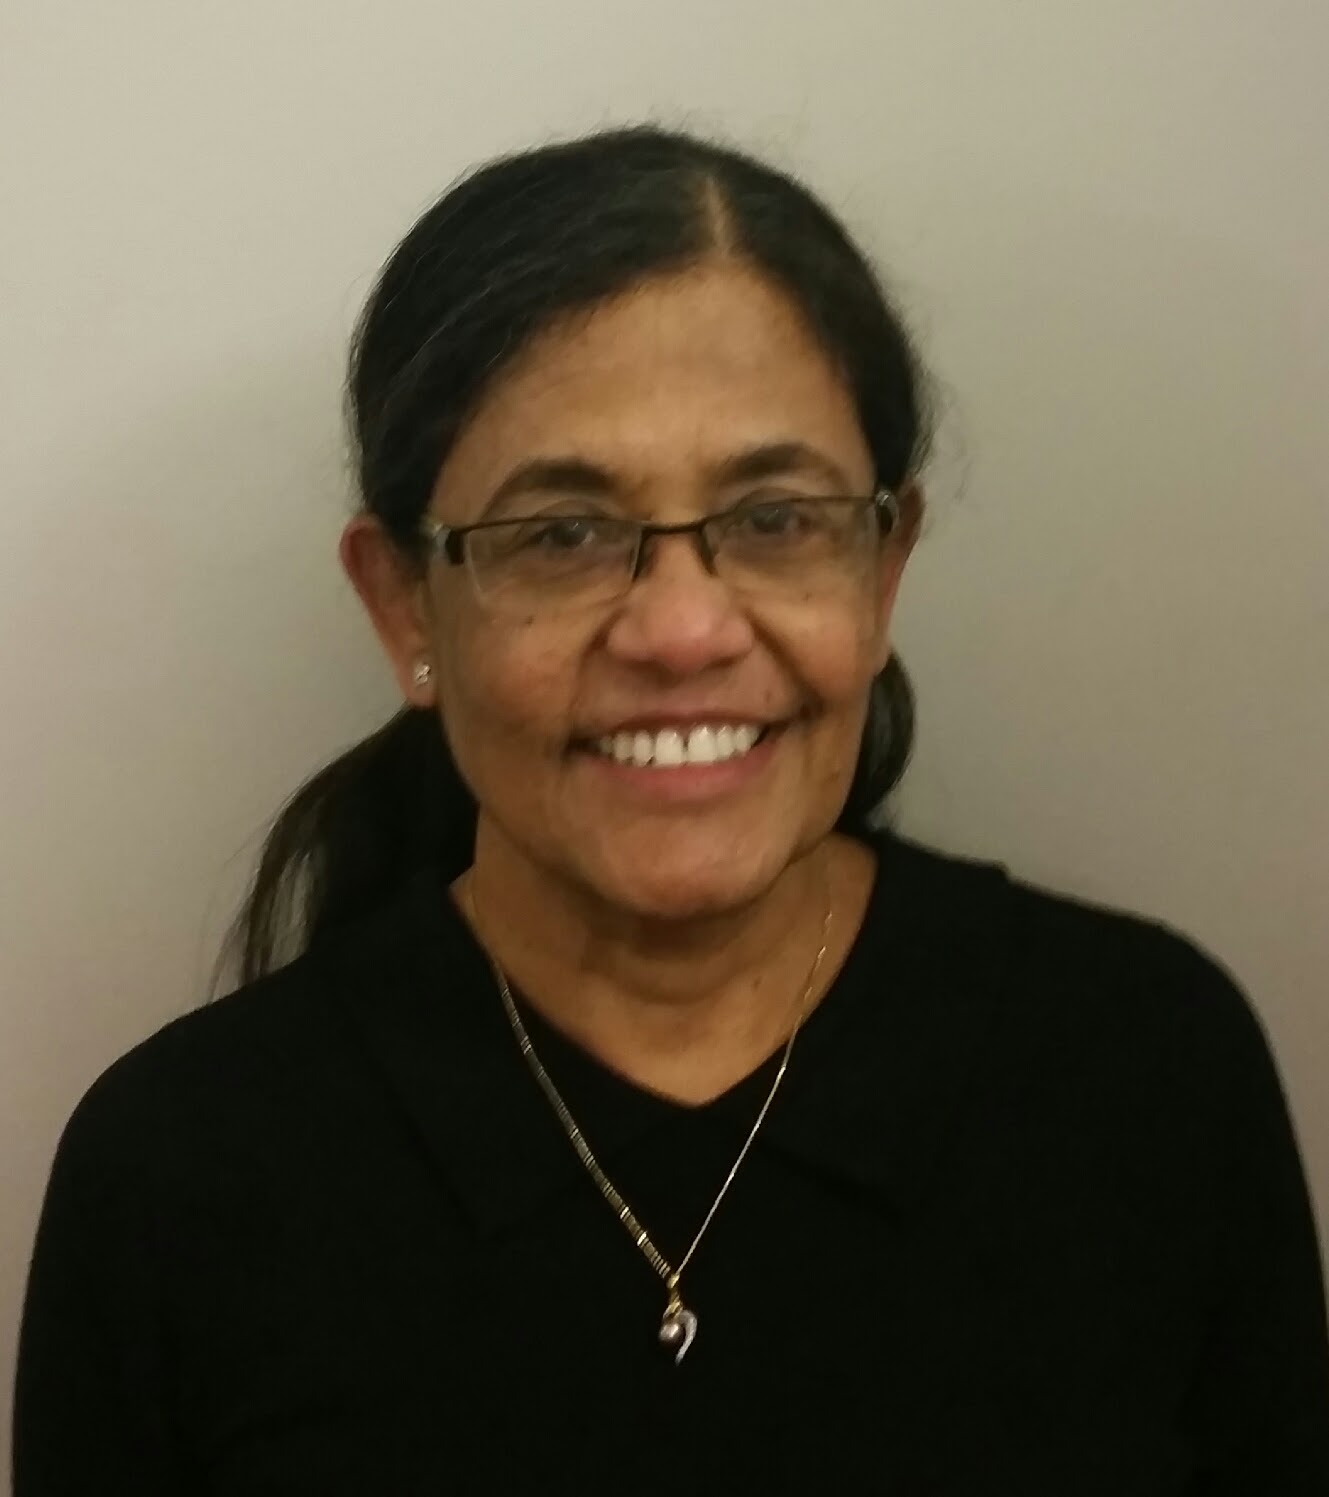 Headshot of Dr Shanta Davie smiling. Her hair is tied back into a ponytail and is wearing glasses and a pendant necklace.